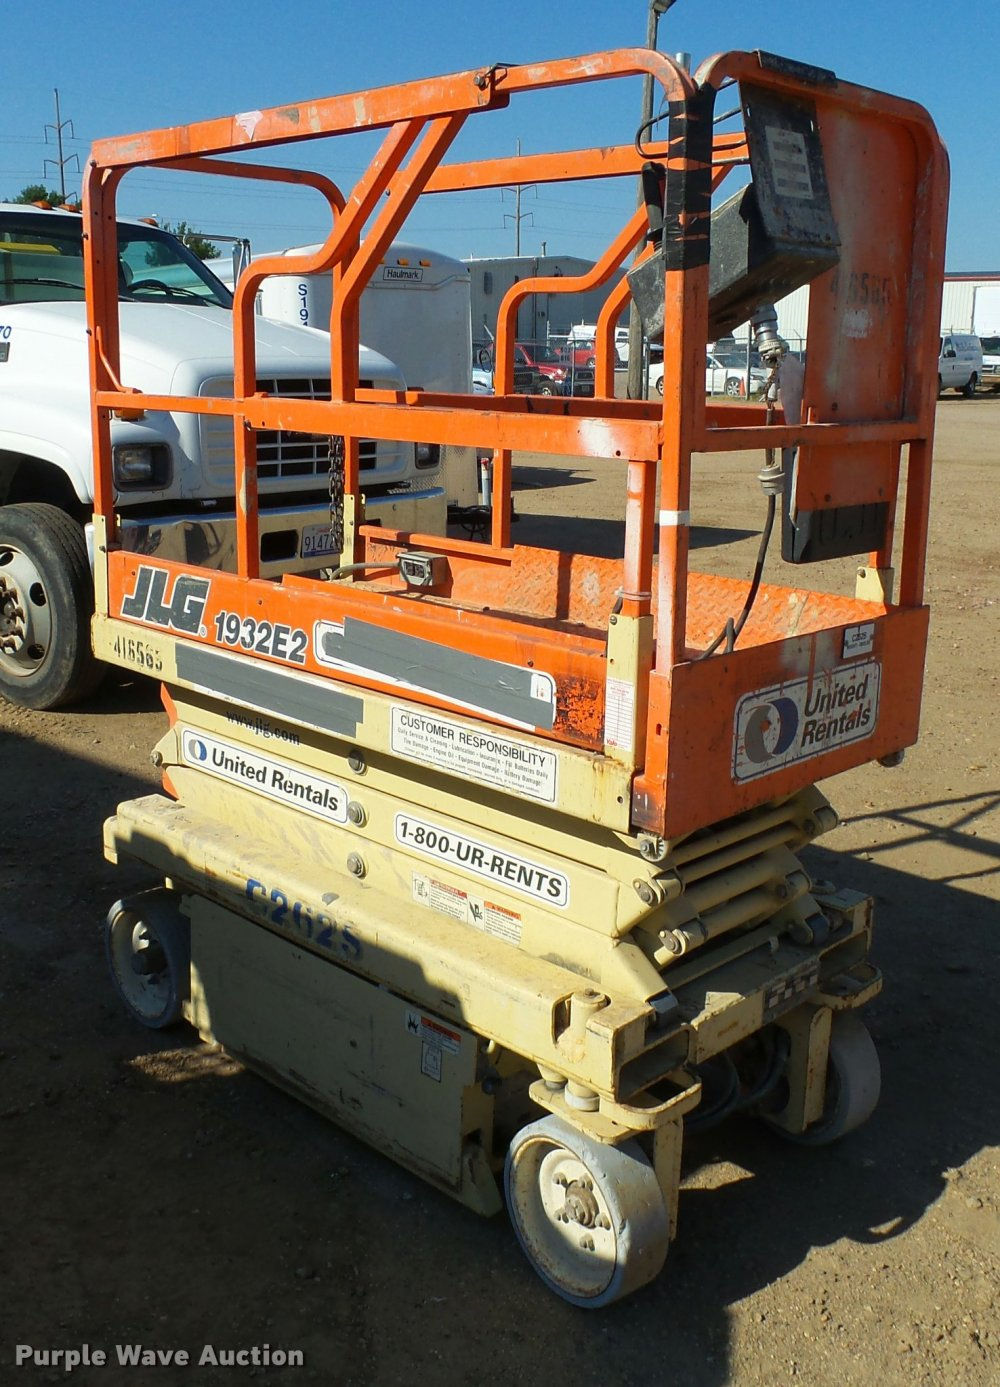 medium resolution of  wiring diagram on jlg 1932e2 scissor lift item al9132 sold september 29 c